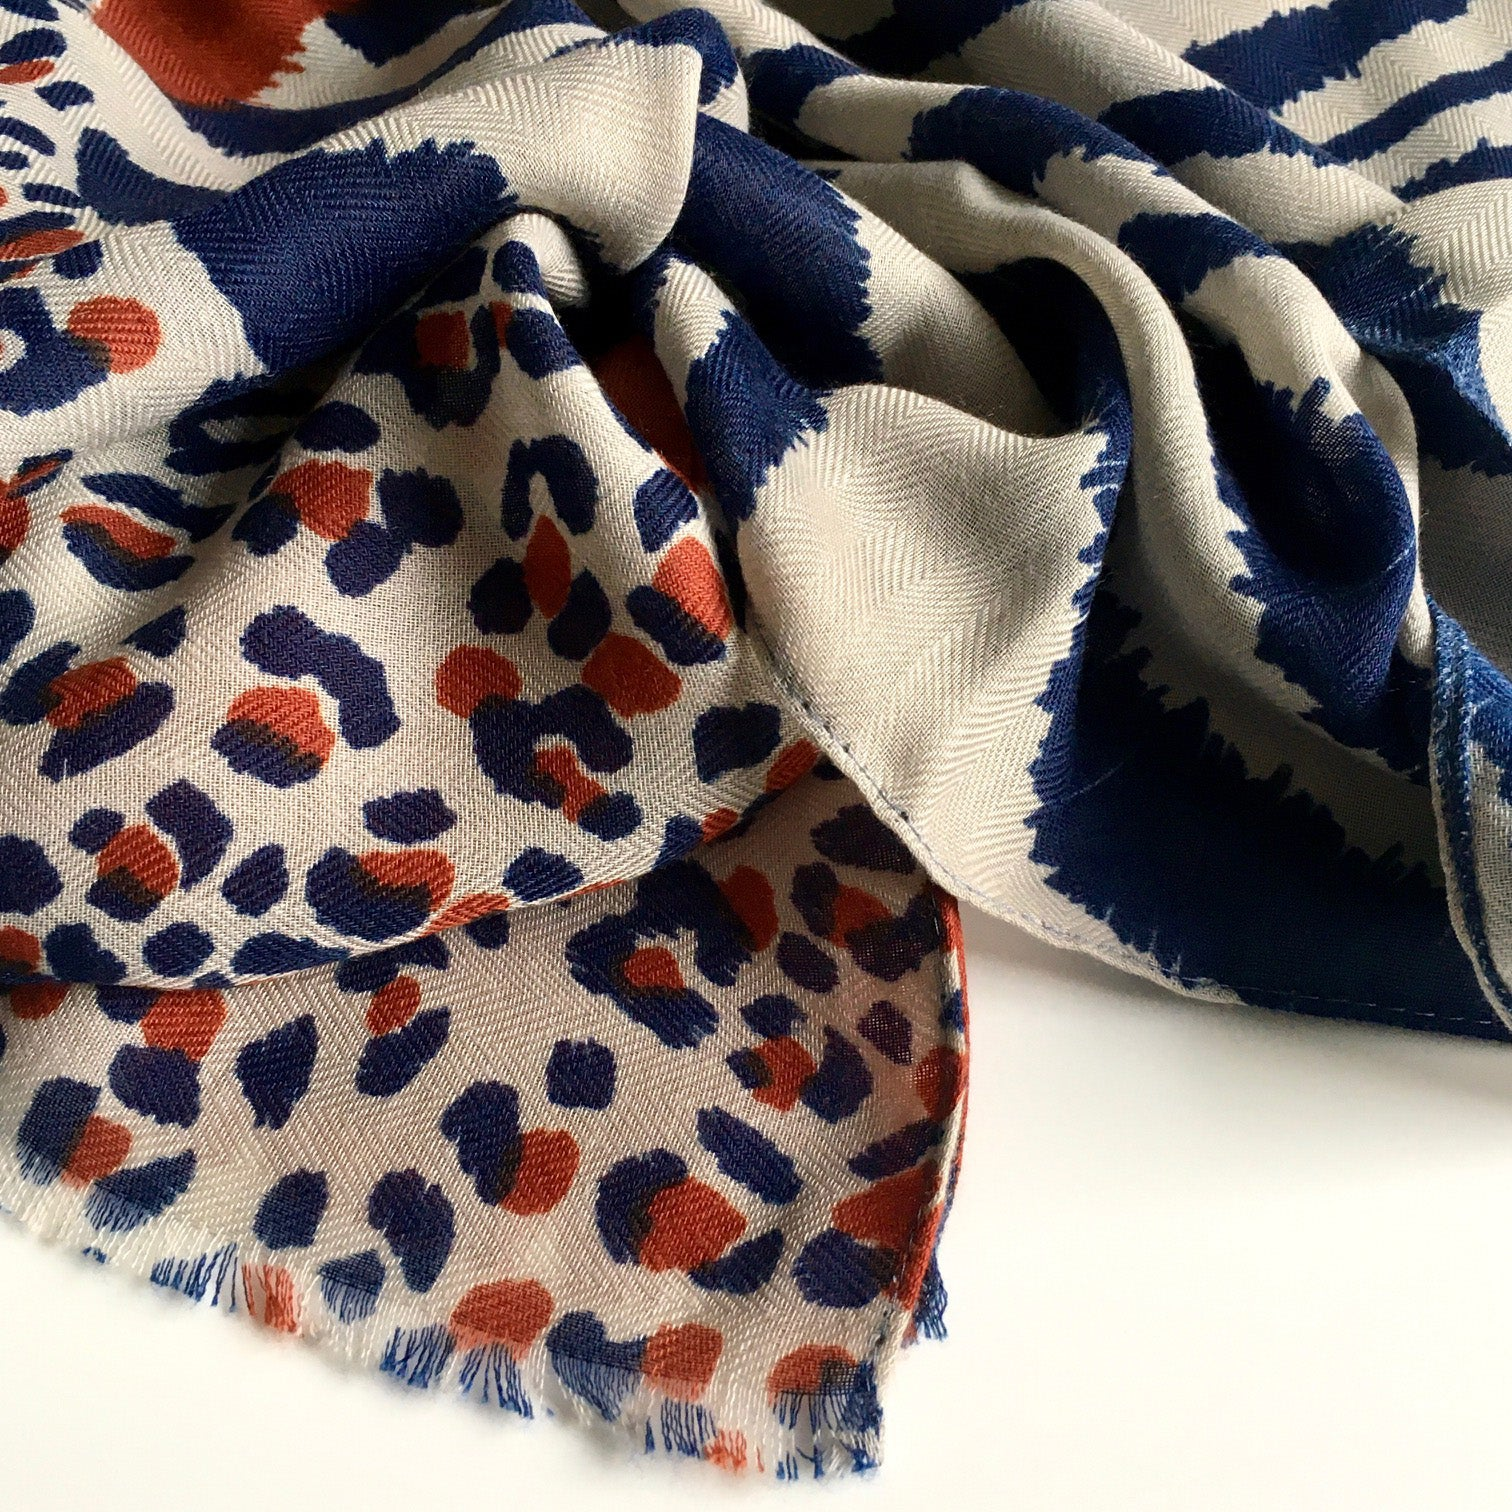 A-SHU LARGE ORANGE RUST COTTON MIX TIGER AND LEOPARD PRINT SHAWL SCARF - A-SHU.CO.UK